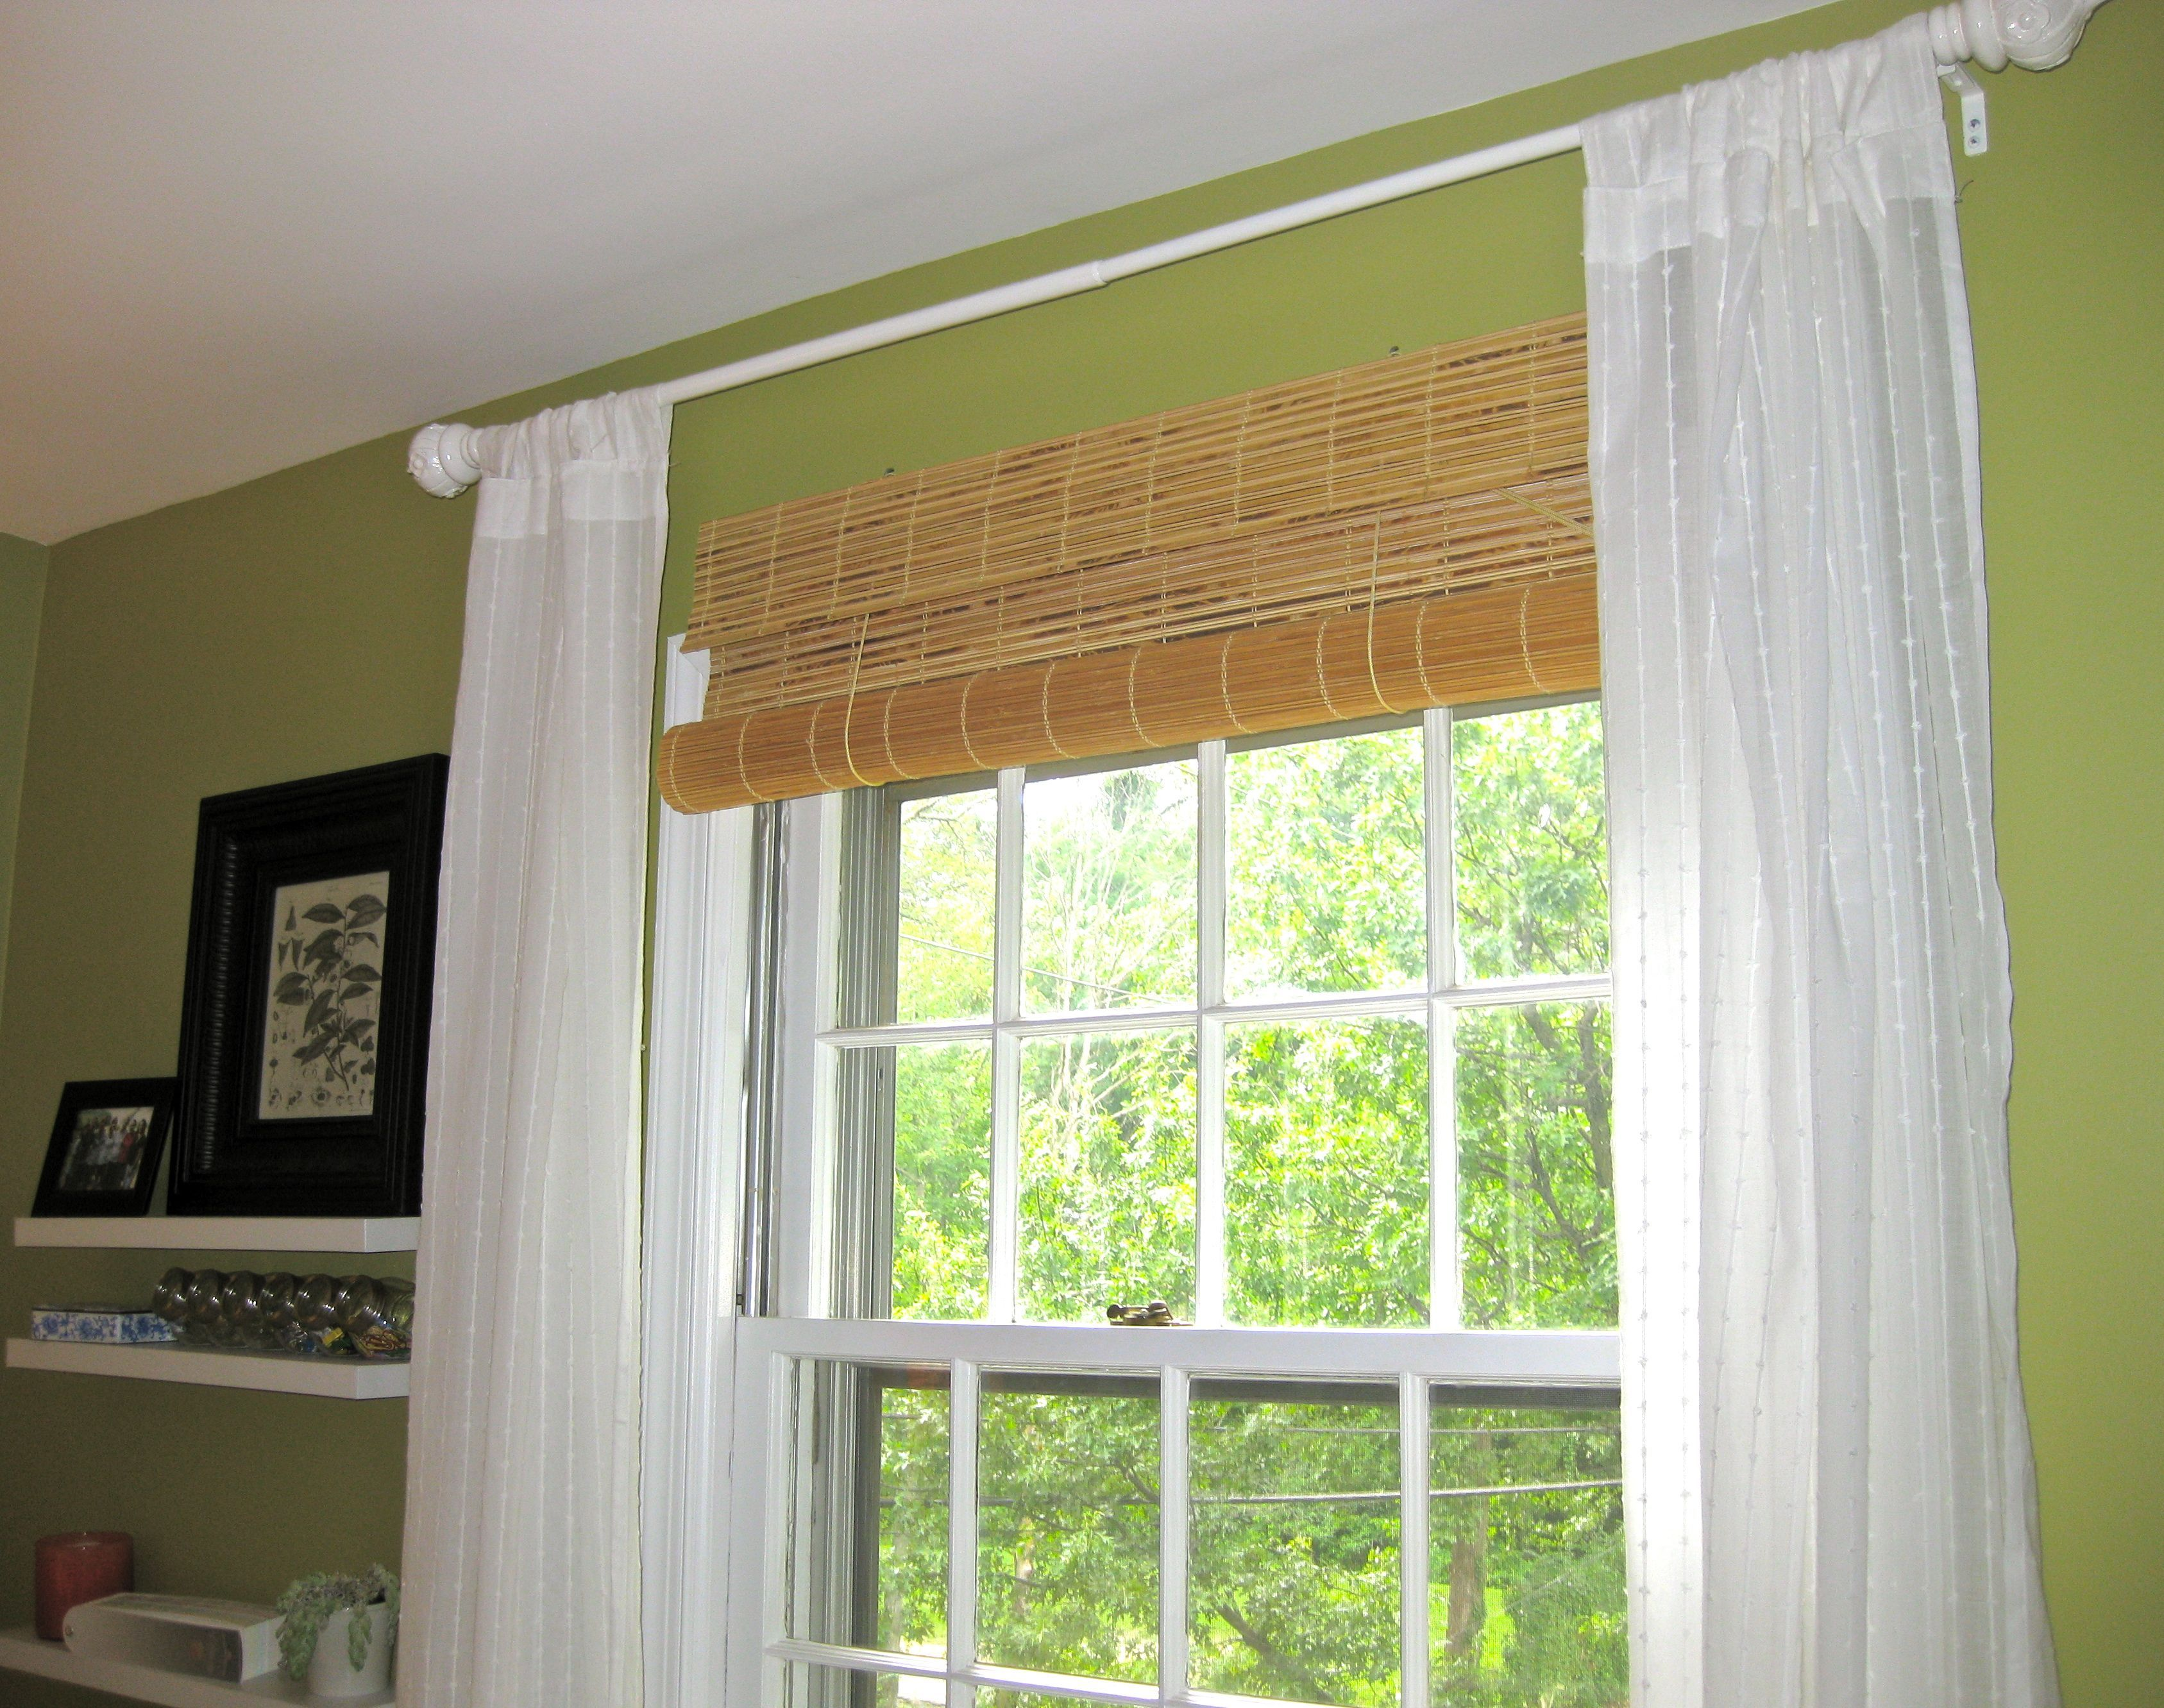 CKM Interiors Hanging Bamboo Blinds Do's And Don'ts Jane's